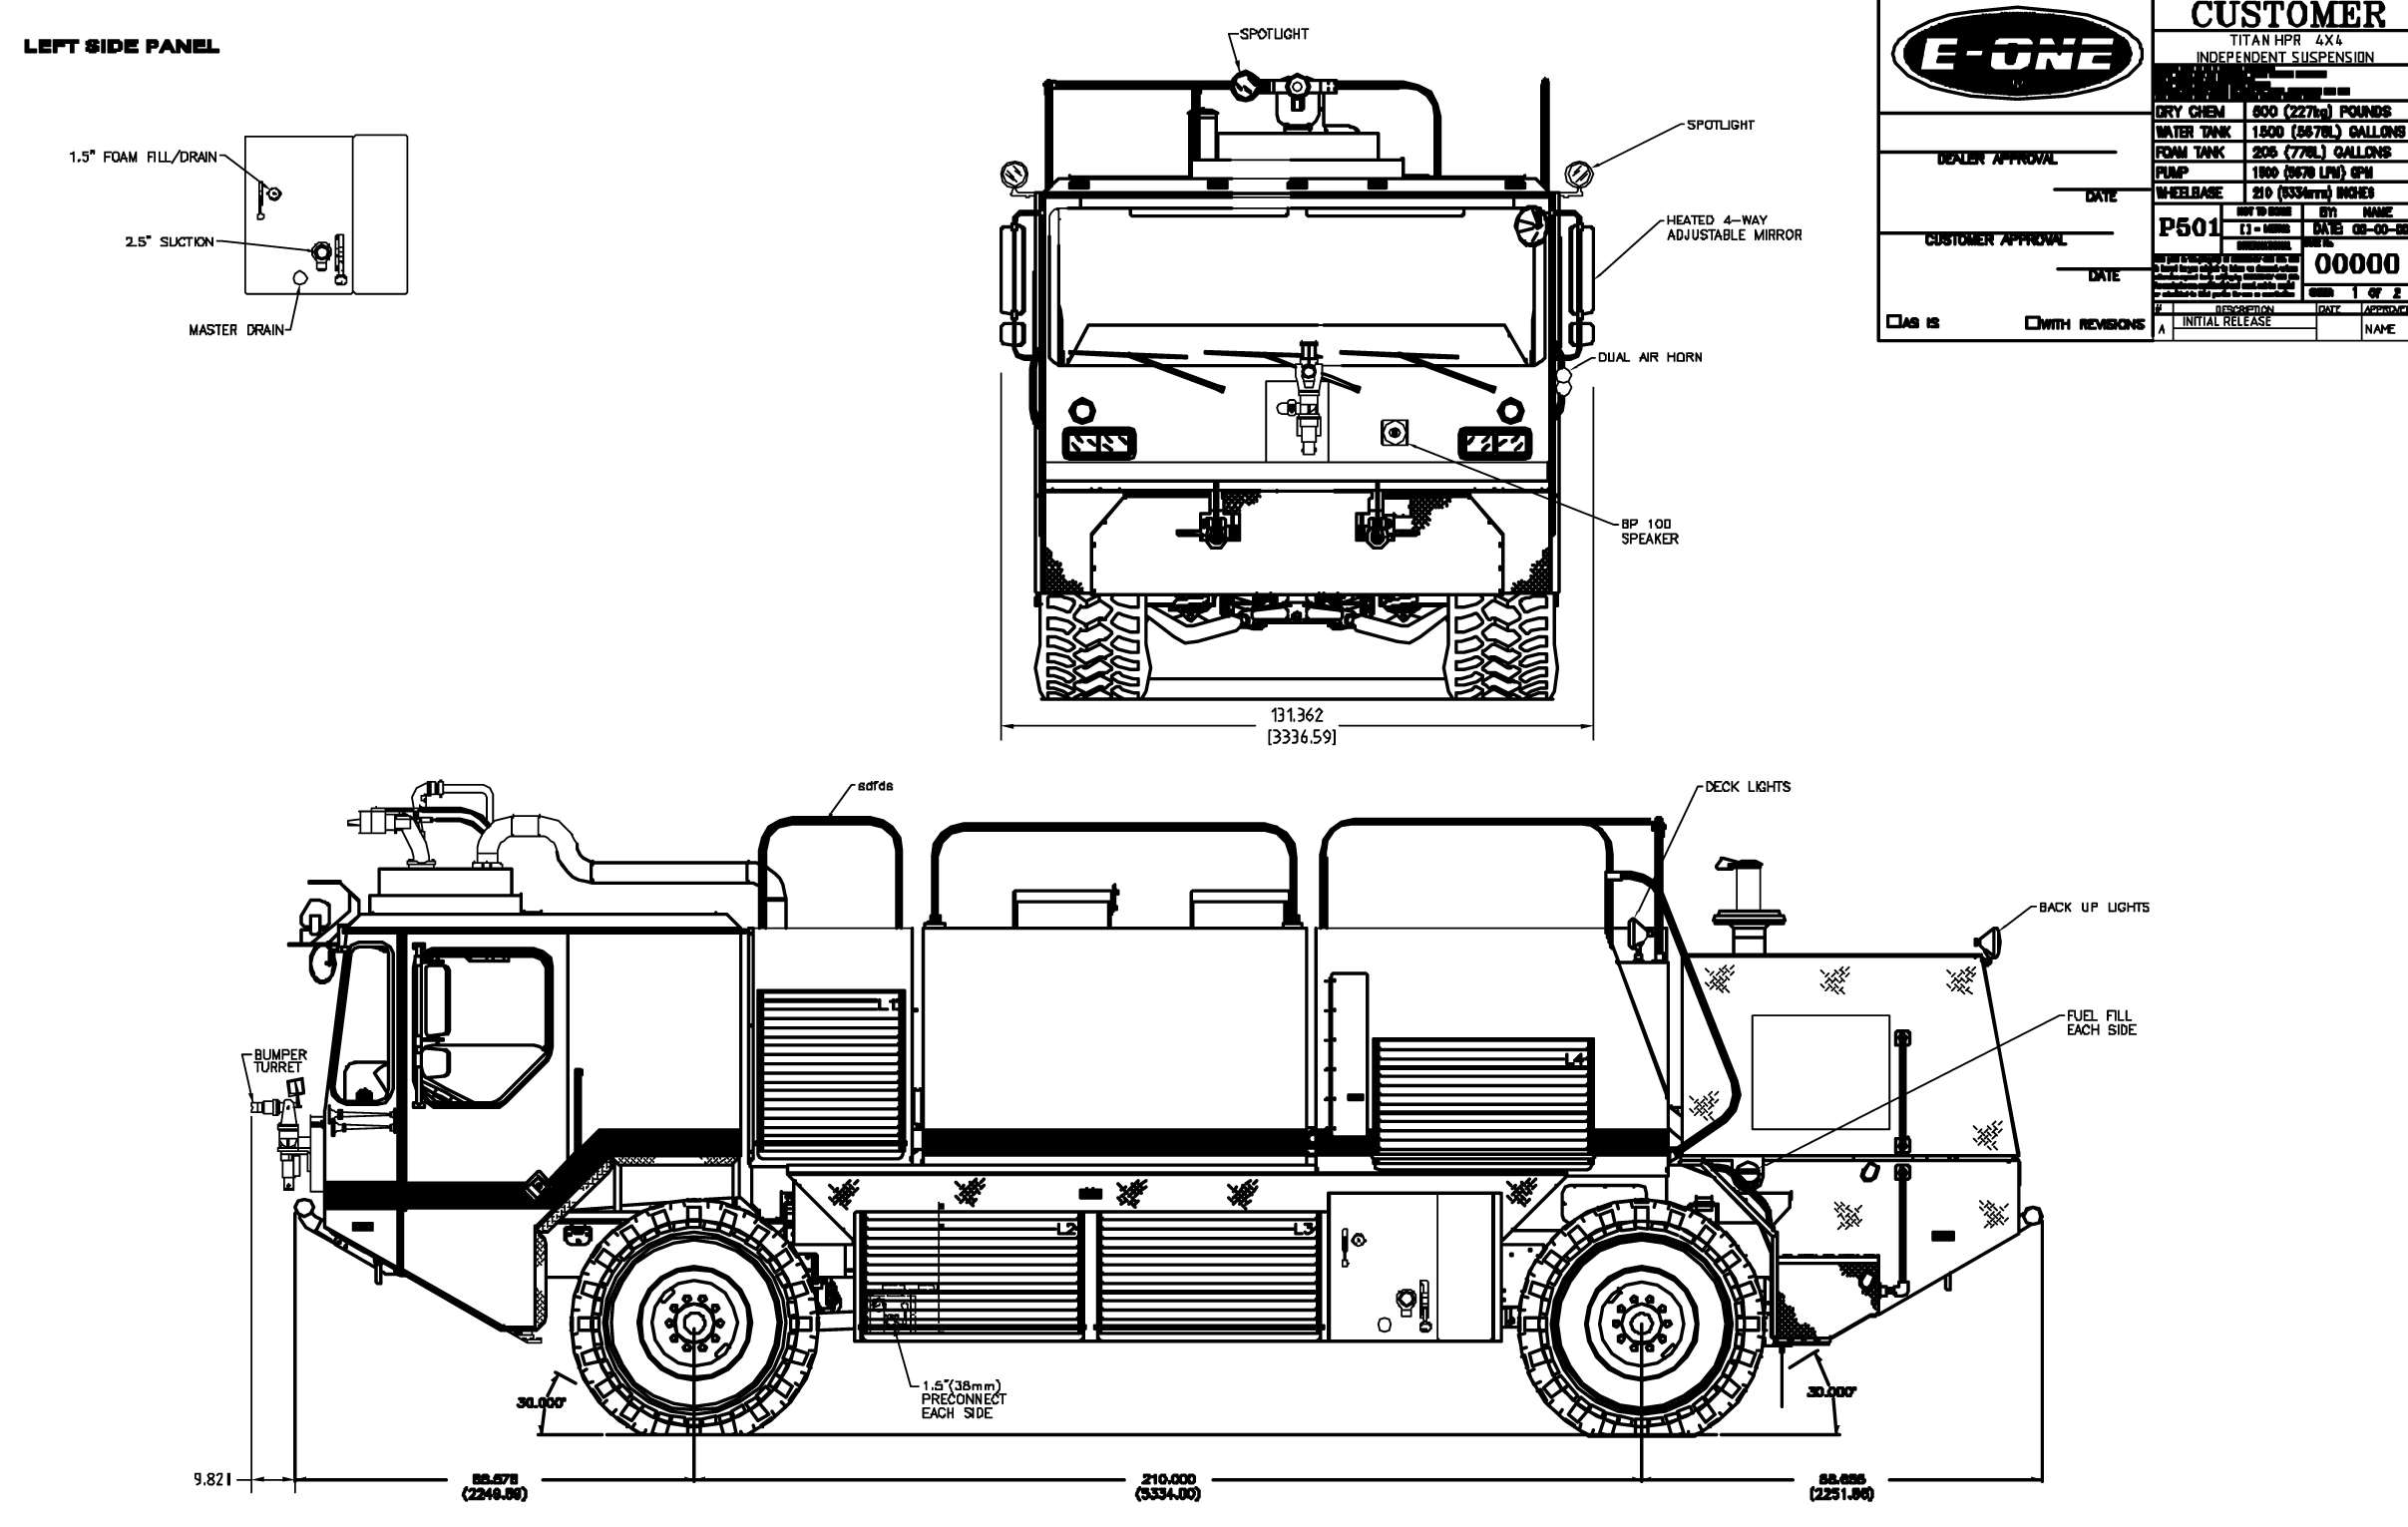 Titan HPR 4x4 blueprint